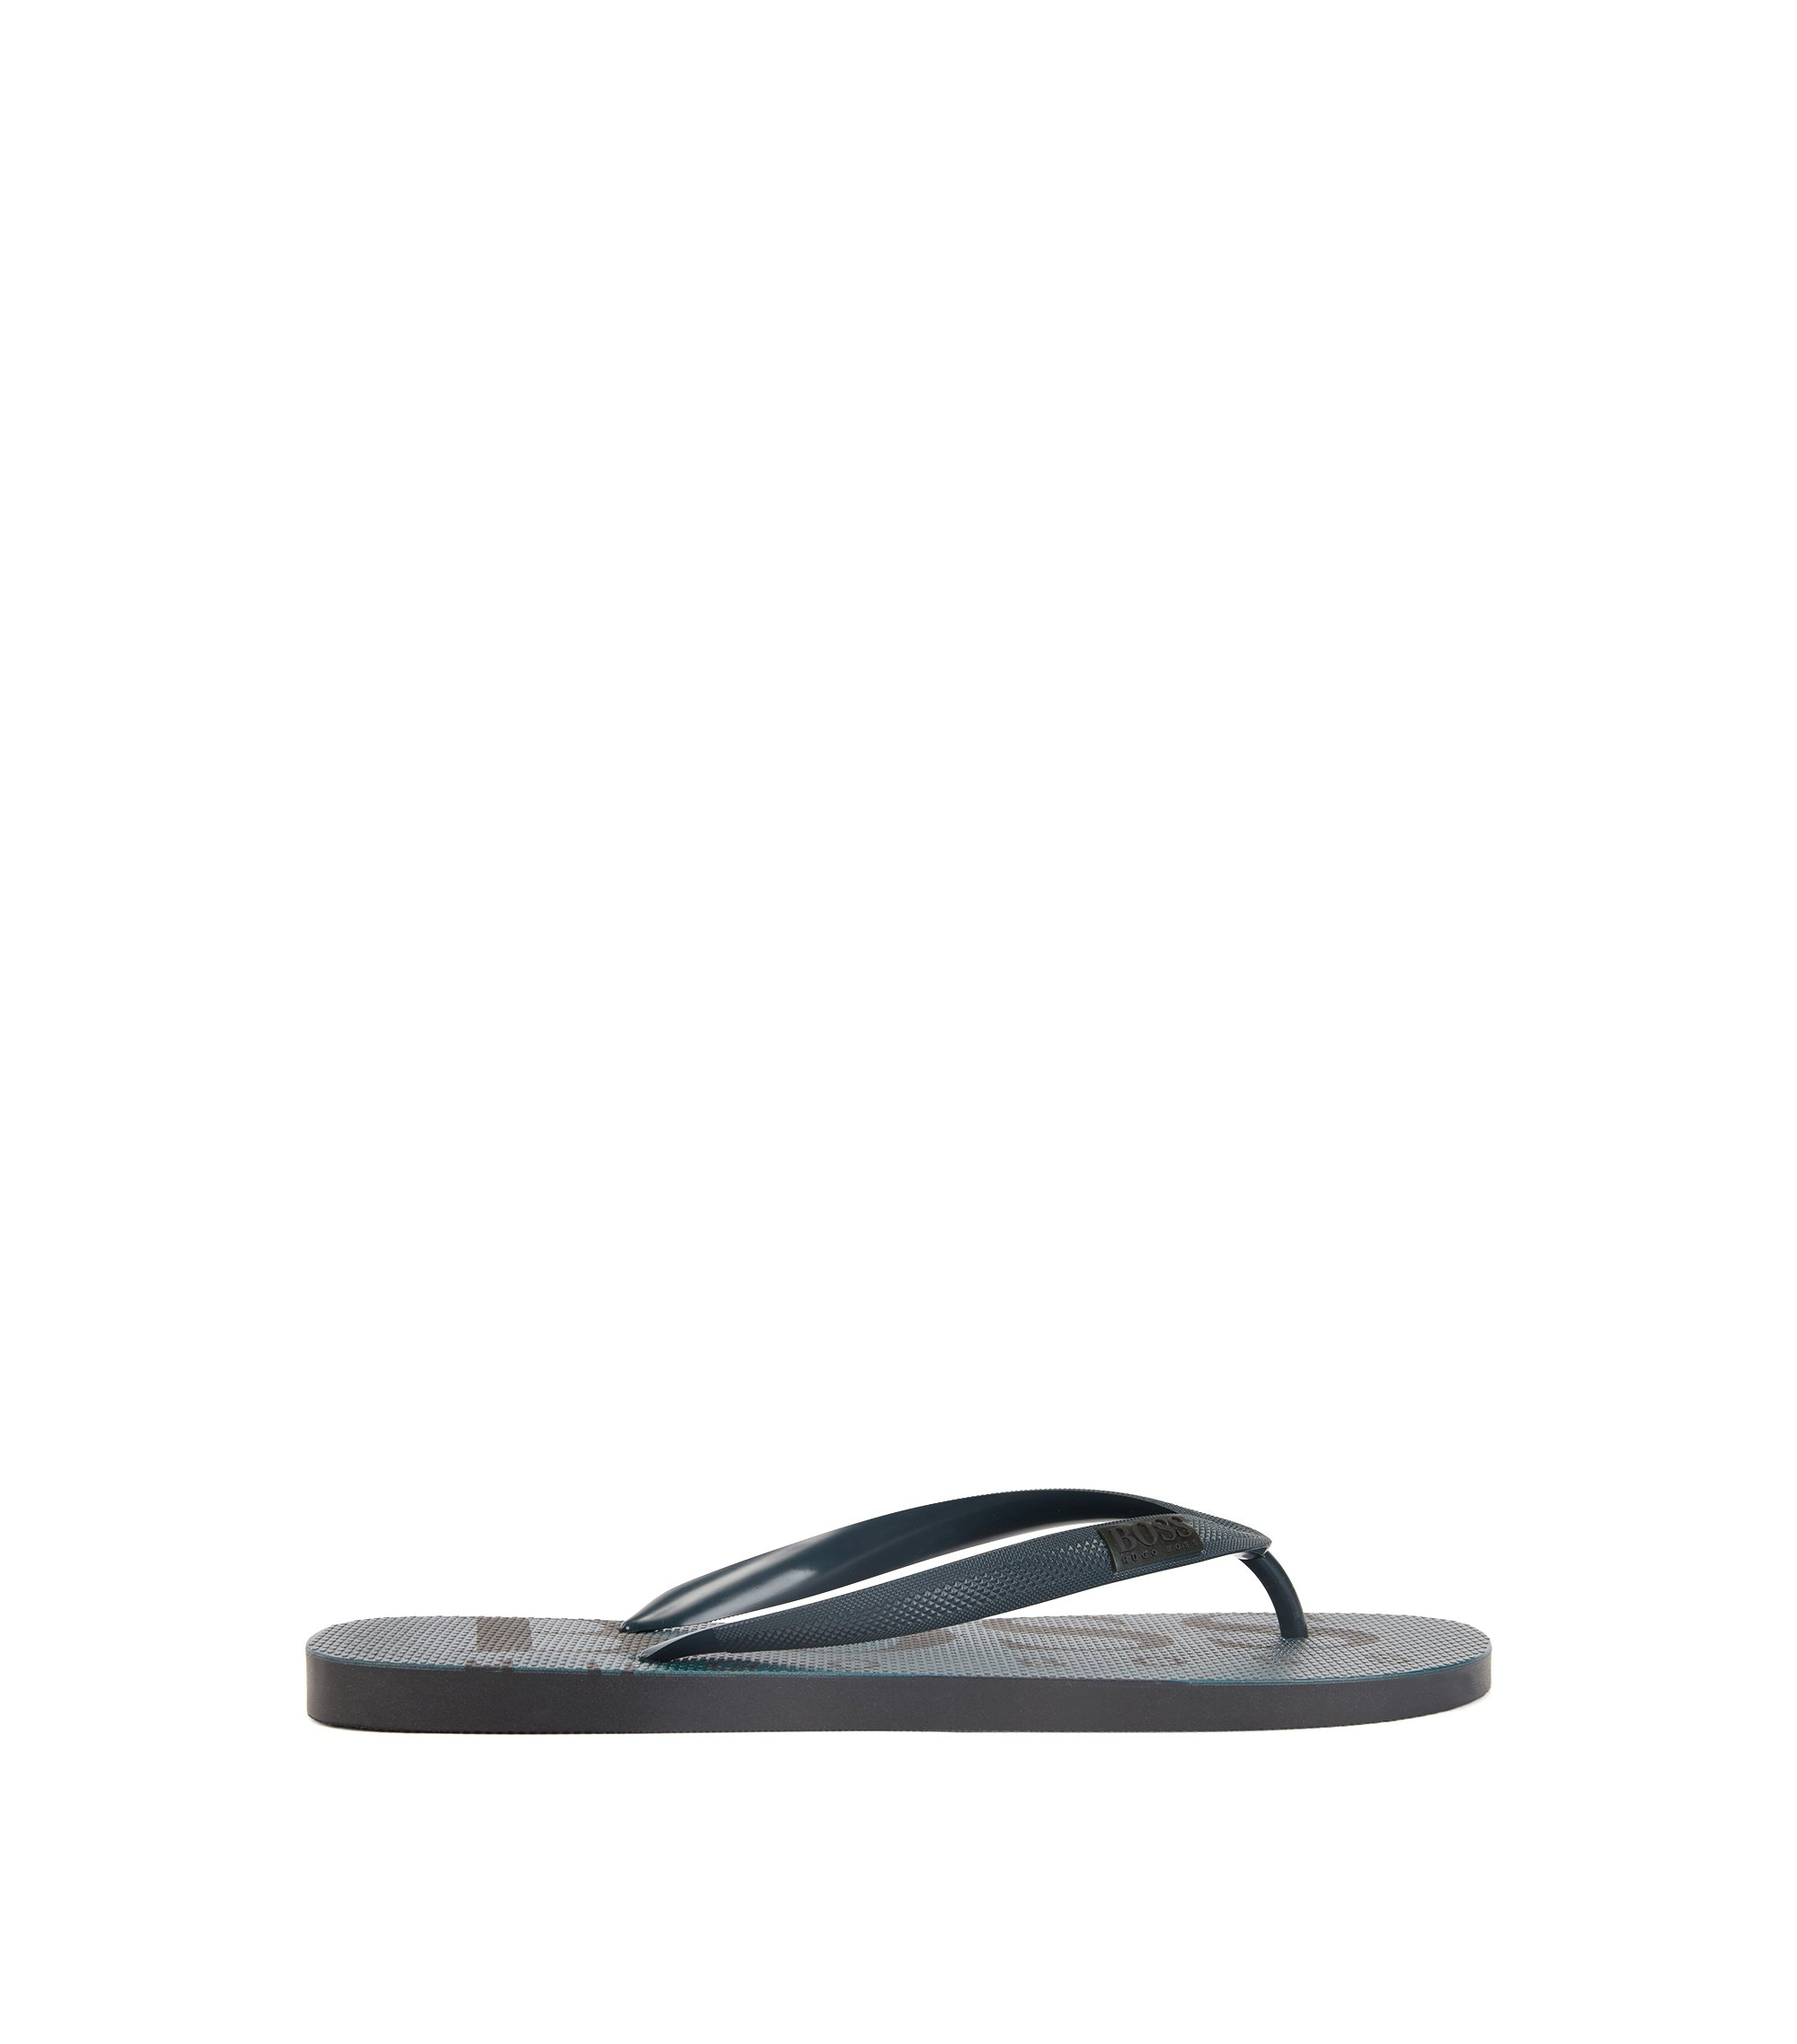 Rubber flip-flops with contrasting logo detail, Dark Green